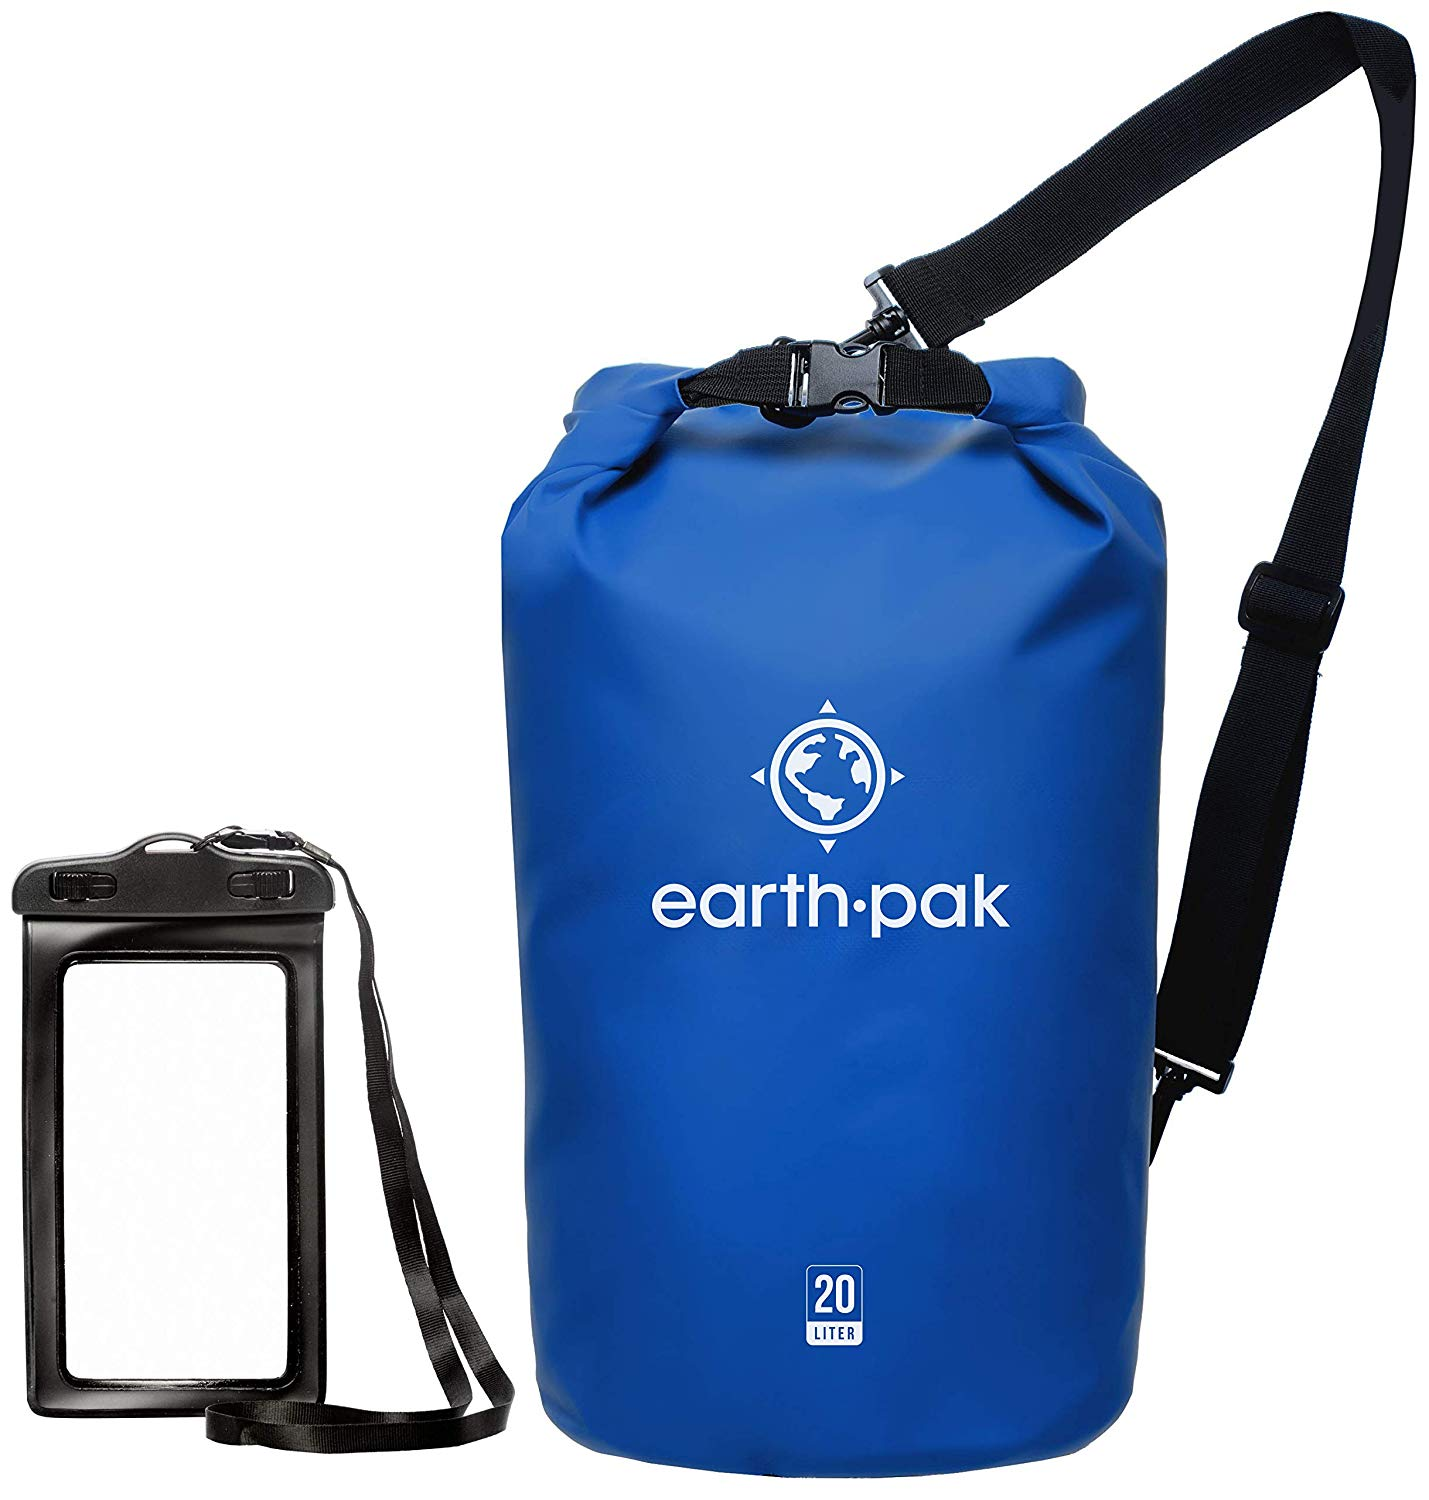 earth pak waterpoof dry bag with phone case christmas gift for boaters